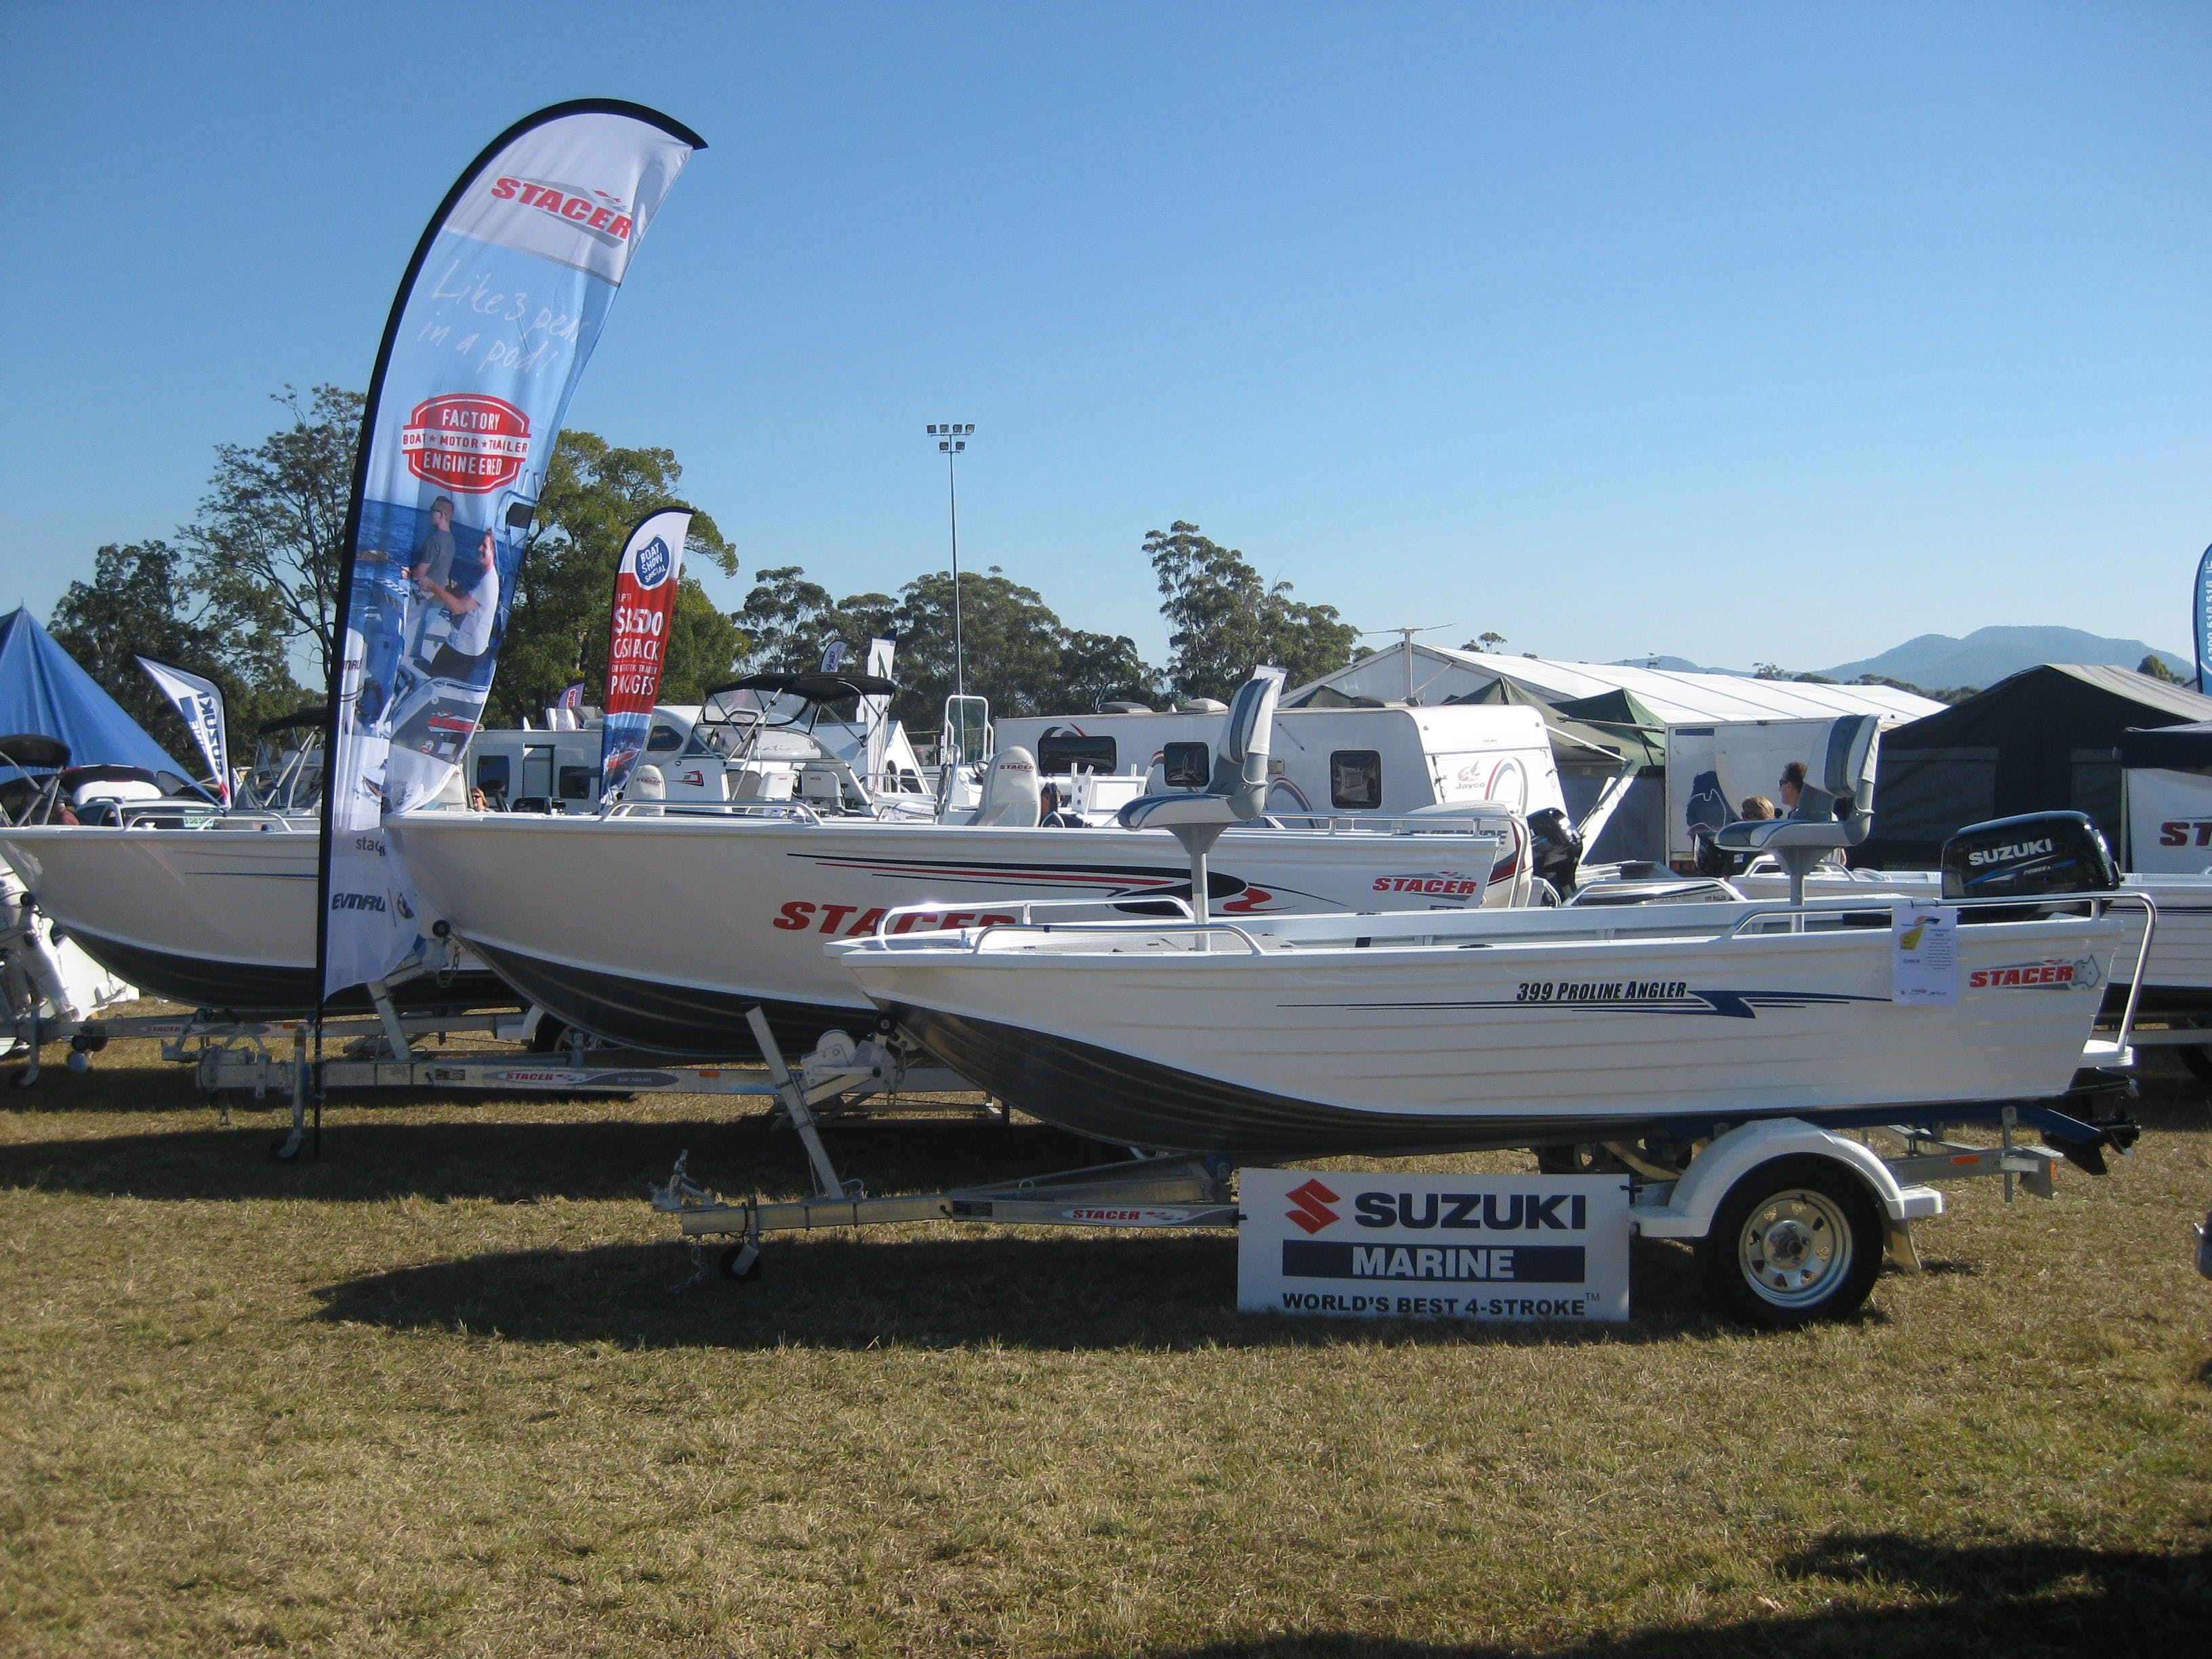 Mid North Coast Caravan Camping 4WD Fish and Boat Show - Tourism Brisbane